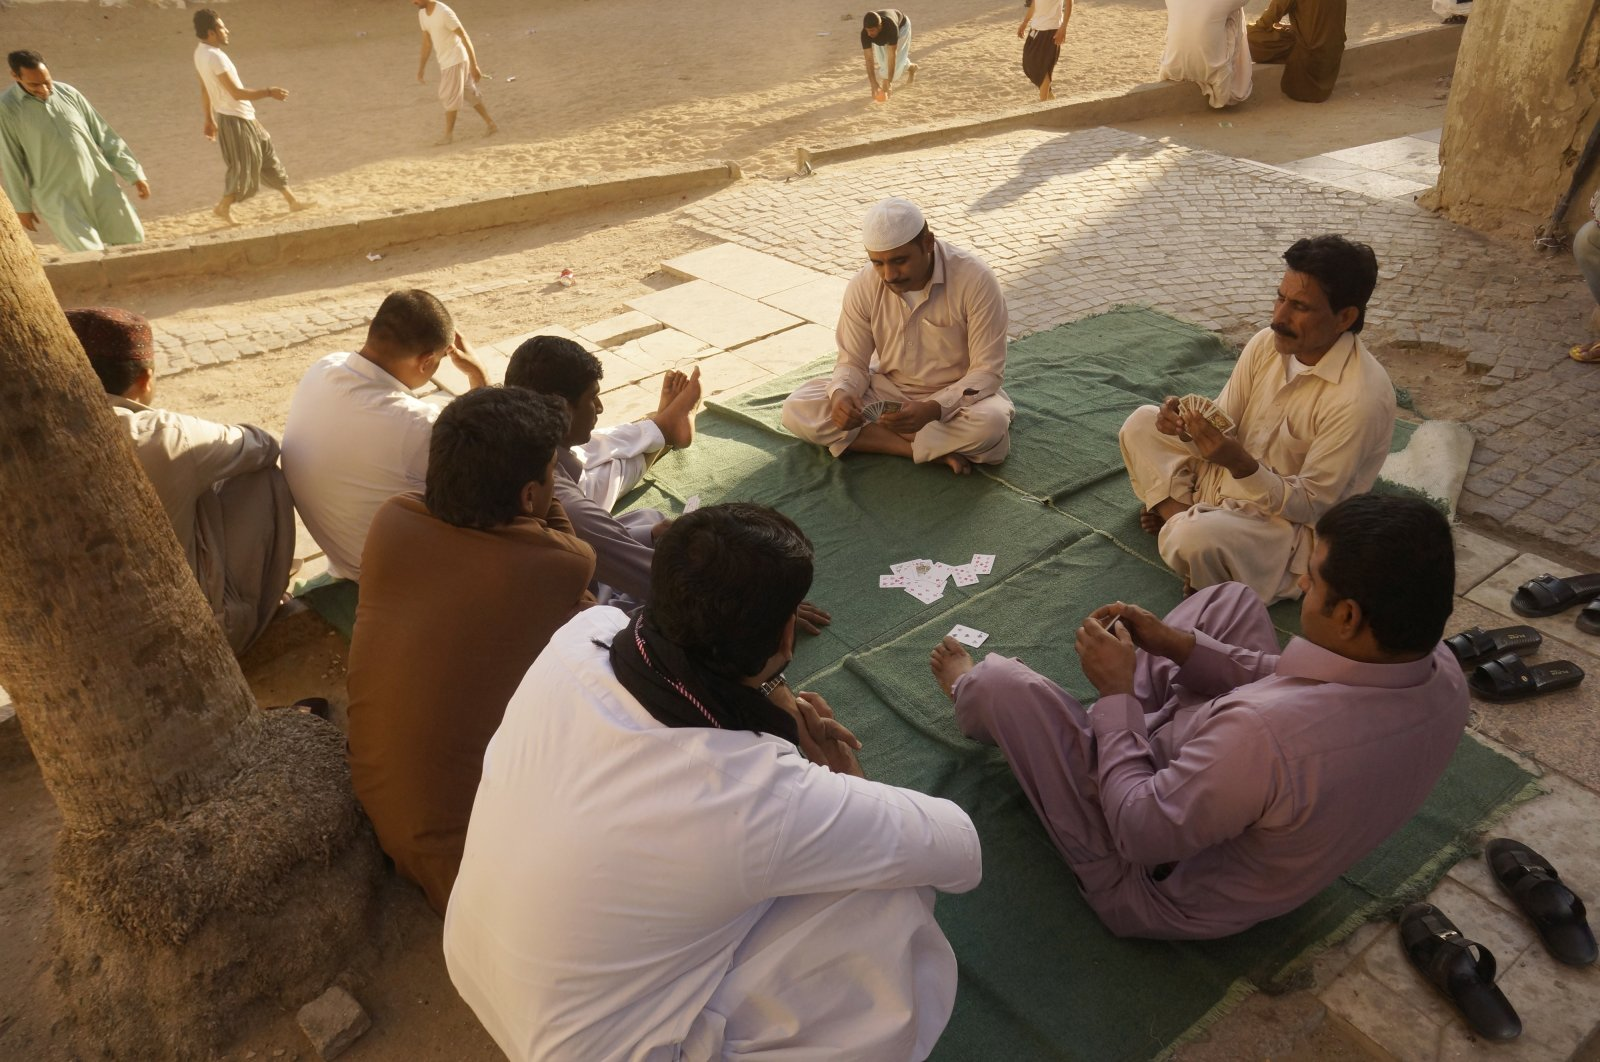 Workers play cards during their holiday in the Old City of Jiddah, Saudi Arabia, Jan. 24, 2020 (AP Photo)